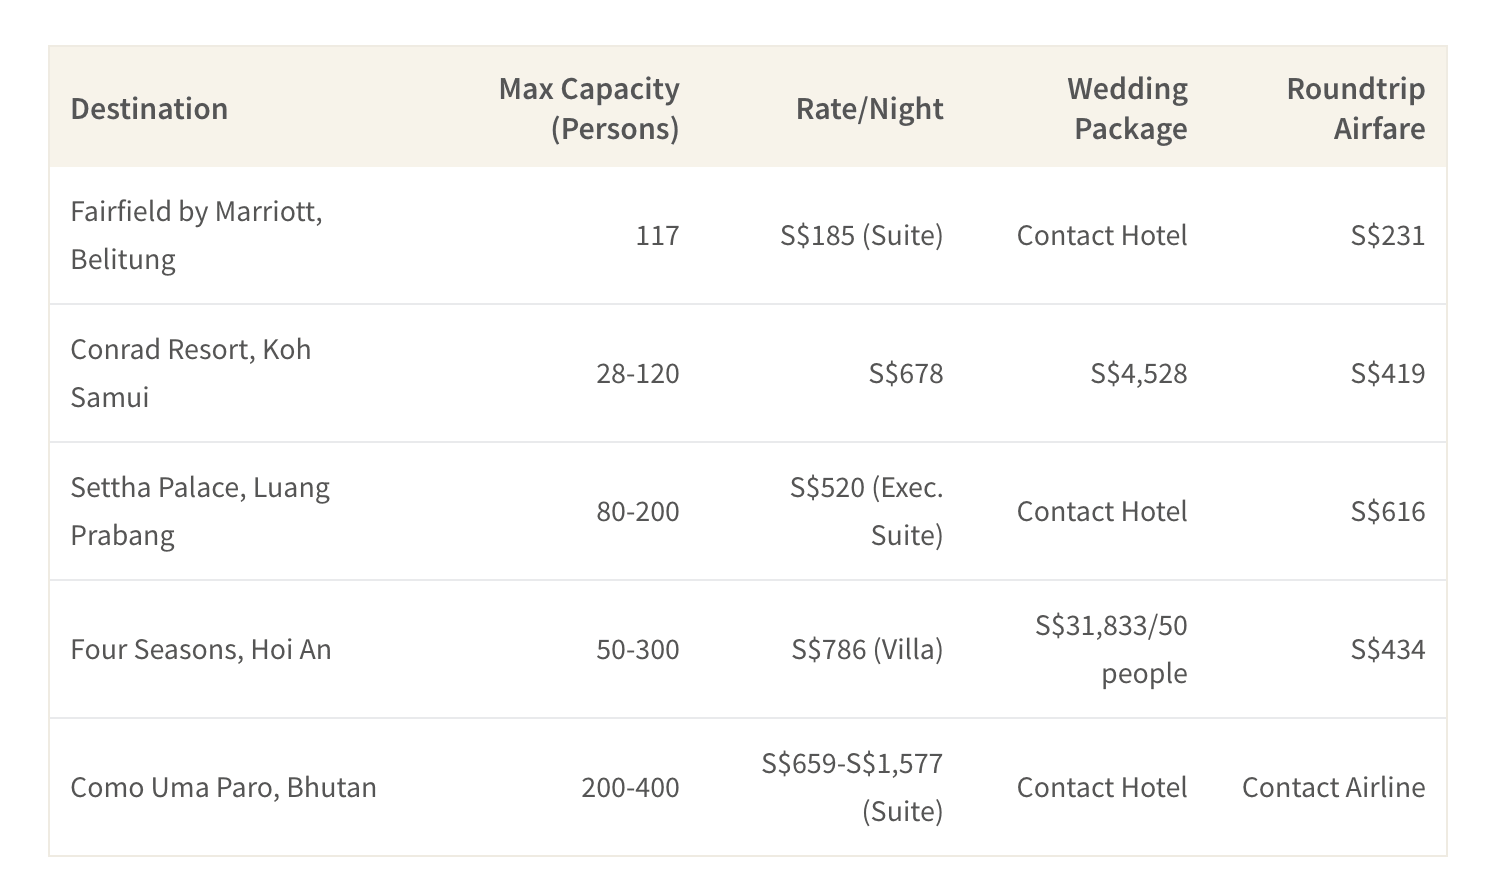 This table shows airfare, wedding packages and accommodation costs of some lesser-known wedding destinations